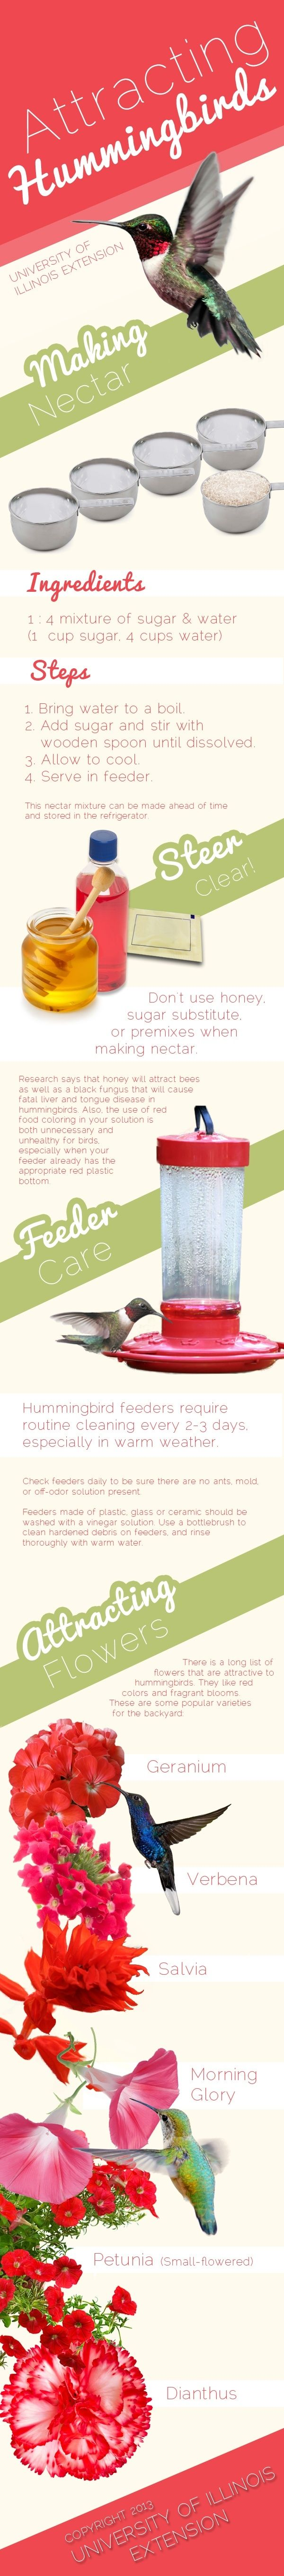 learn some simple ways to attract hummingbirds to your garden by